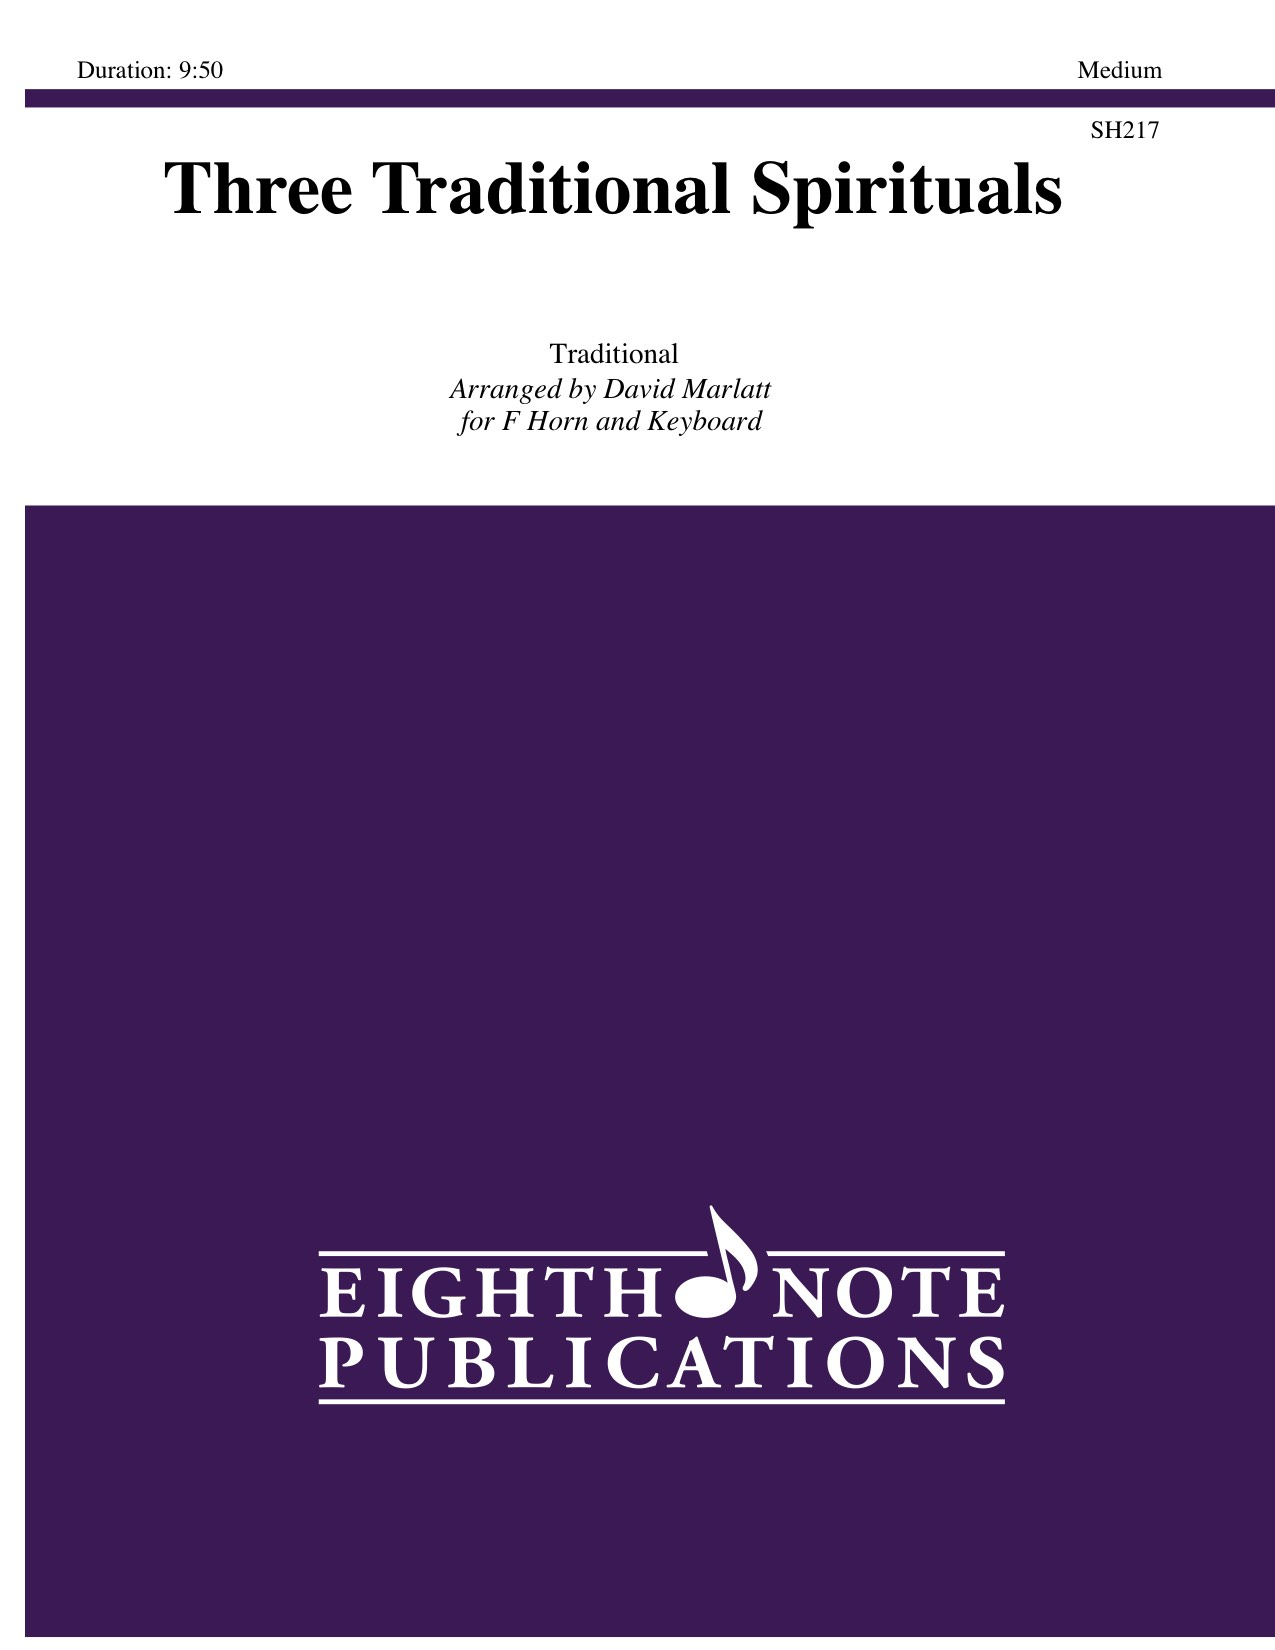 Three Traditional Spirituals  -  Traditional